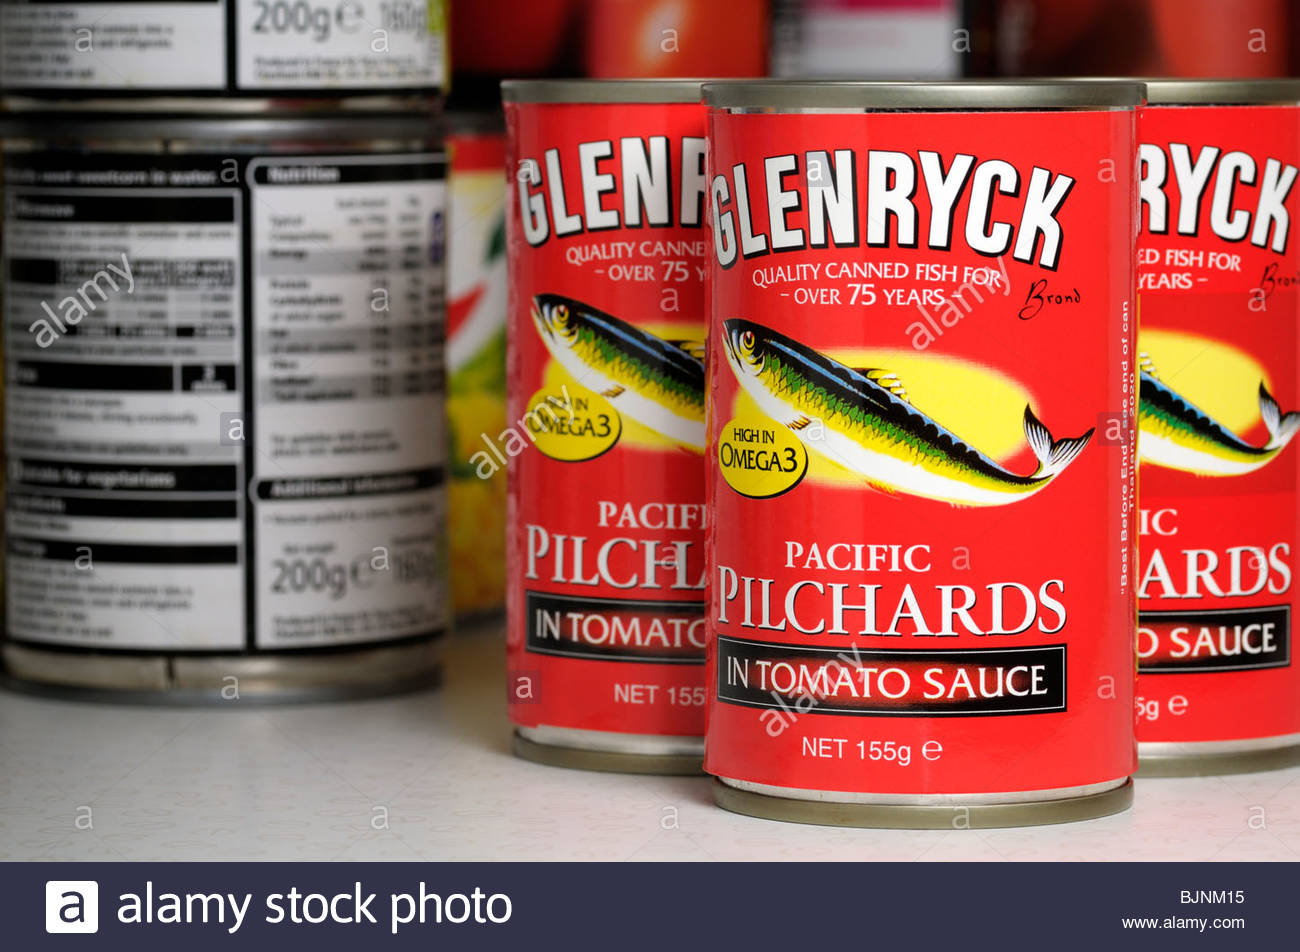 Close up of tins of Glenryck Pilchards in a store cupboard, England UK - Stock Image